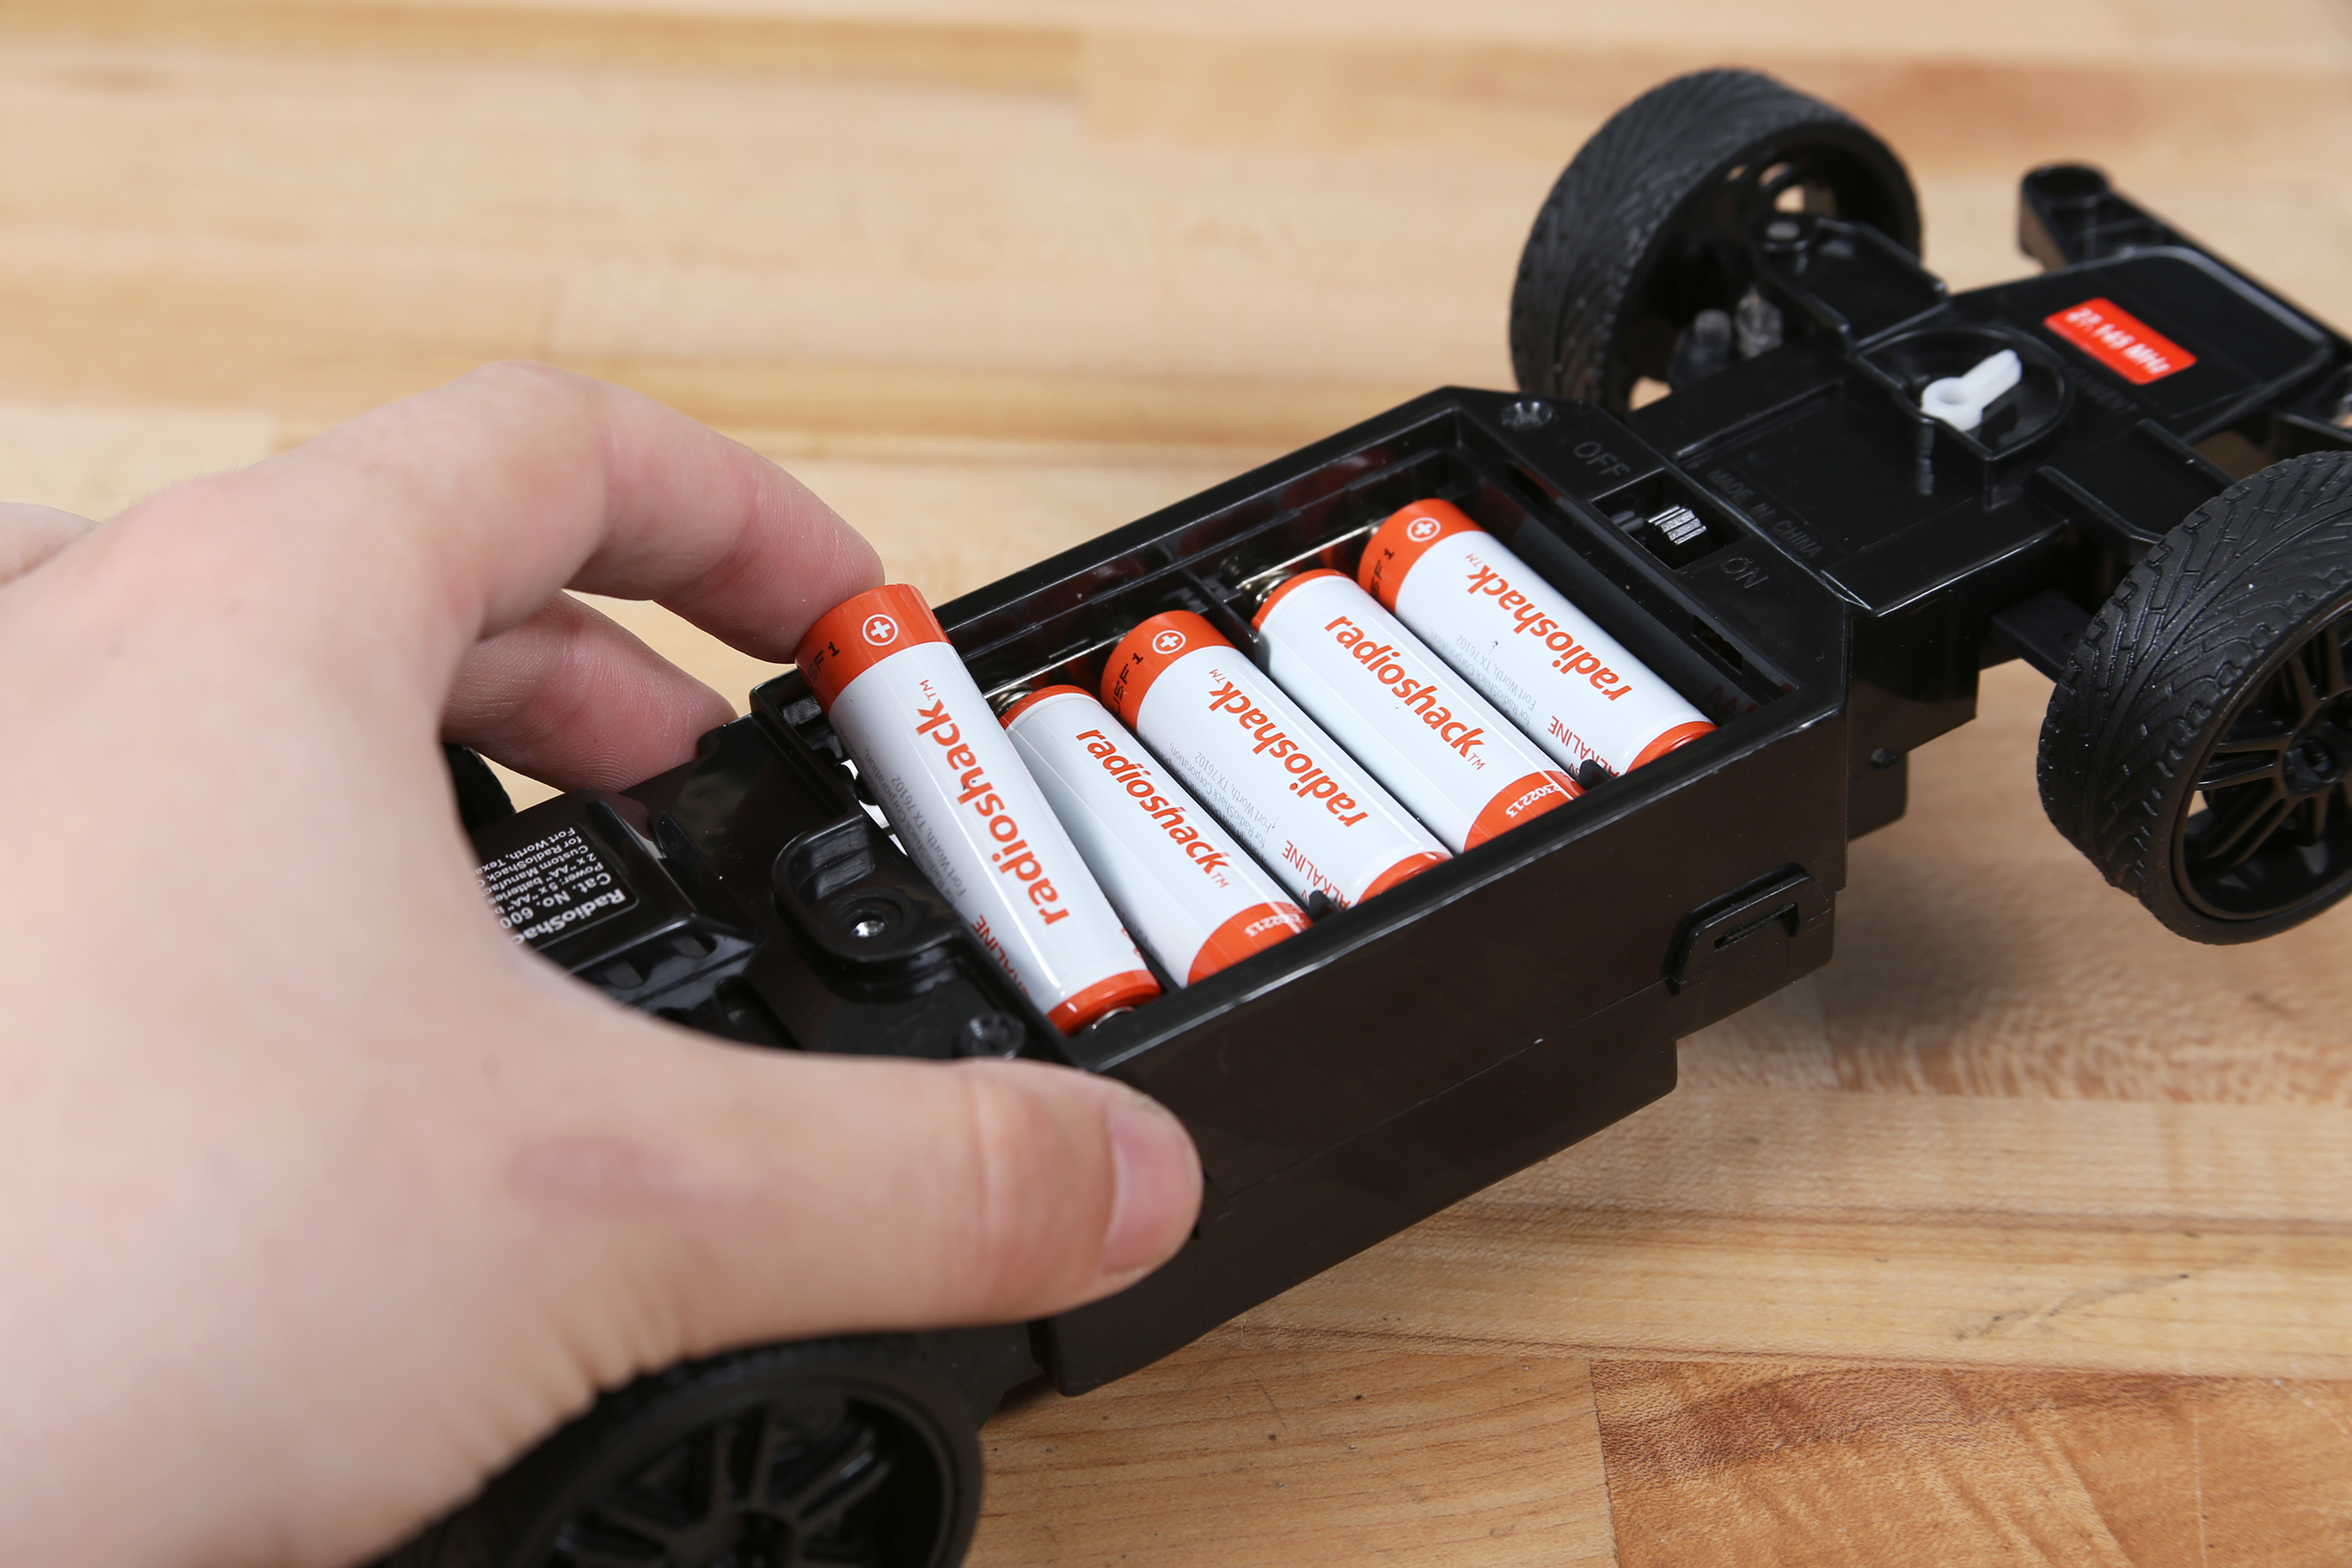 Picture of Batteries and Zip Tie